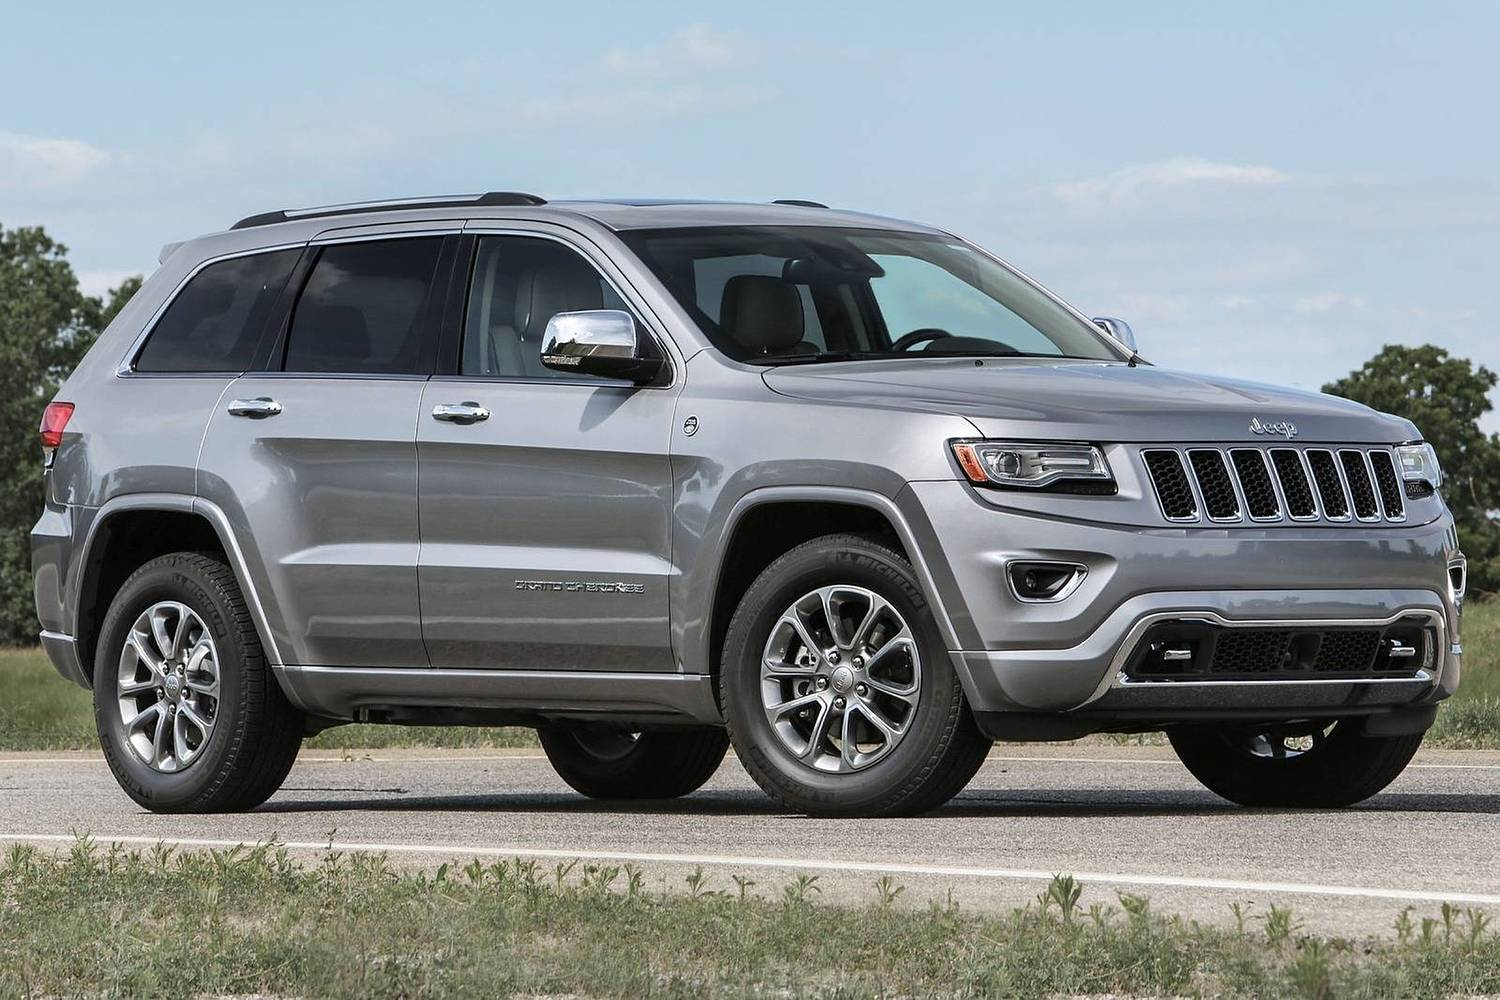 2016 Jeep Grand Cherokee Overland 4dr SUV Exterior